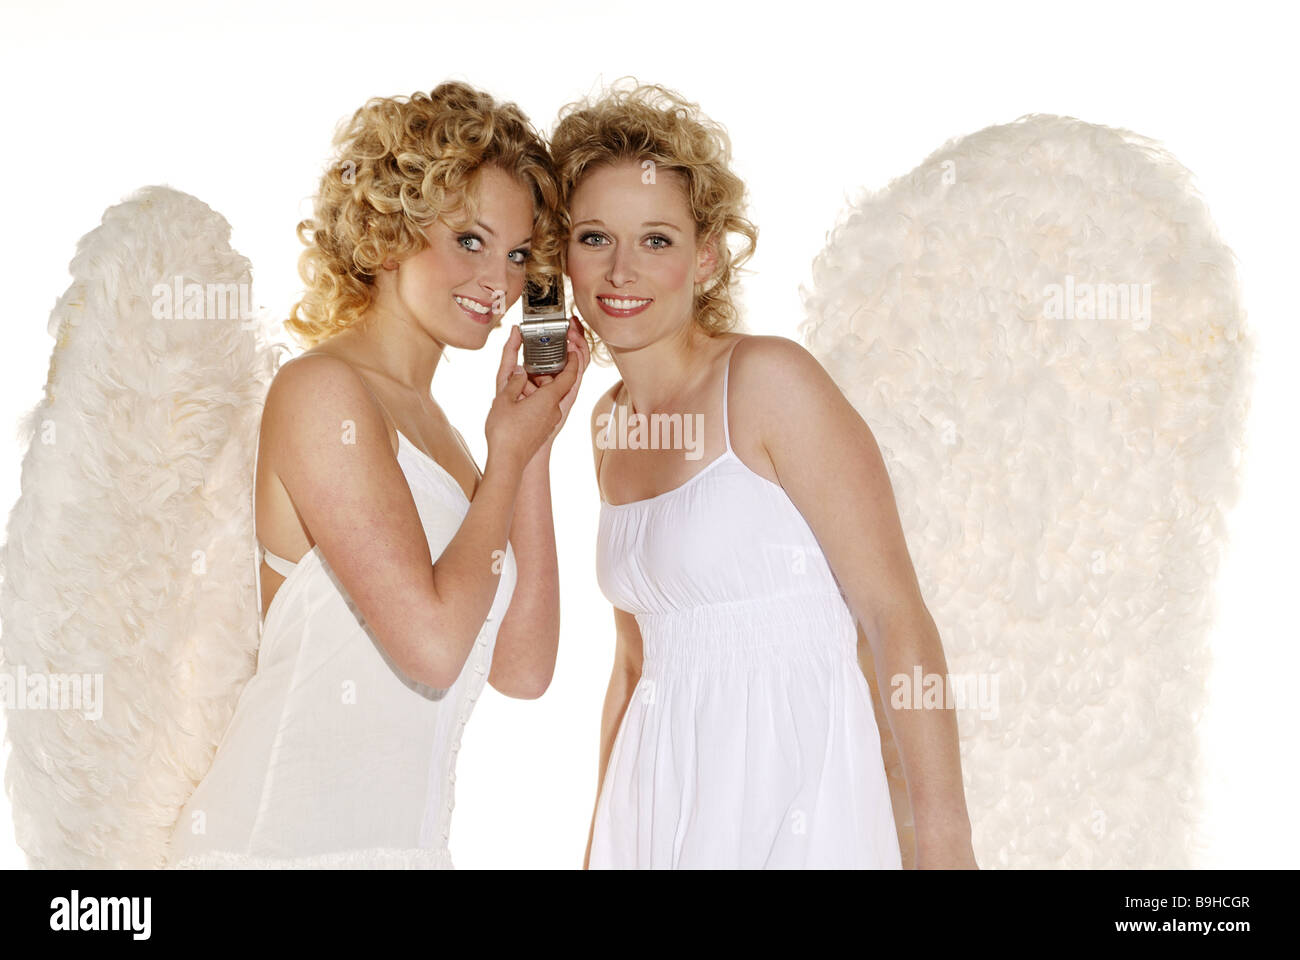 Women young blond angel wings smiling telephones cheerfully cell phone together semi-portrait christmas people christmas - Stock Image